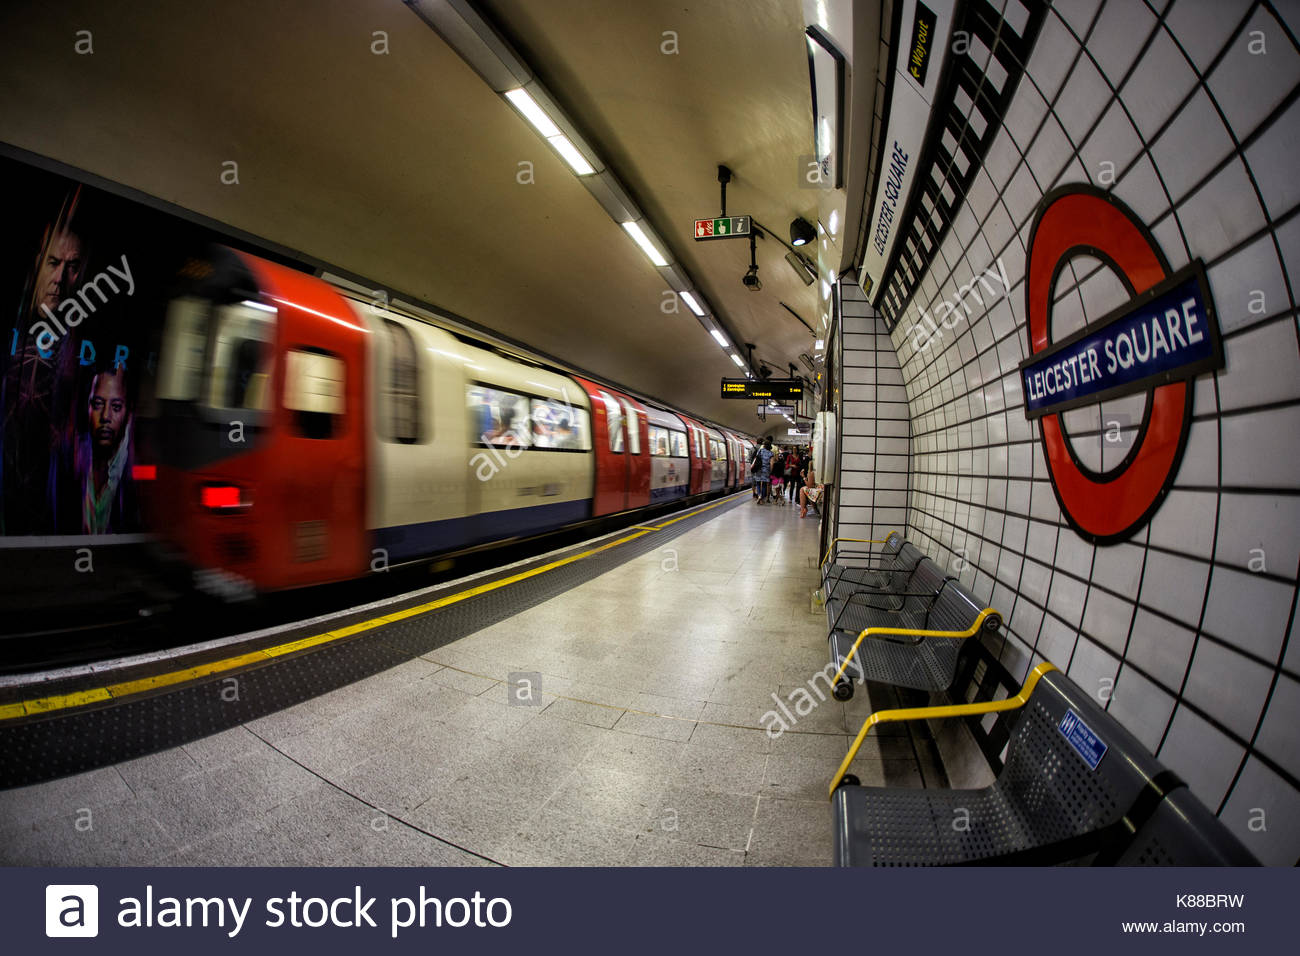 Northern Line Train Leaving Leicester Square Station, London - Stock Image